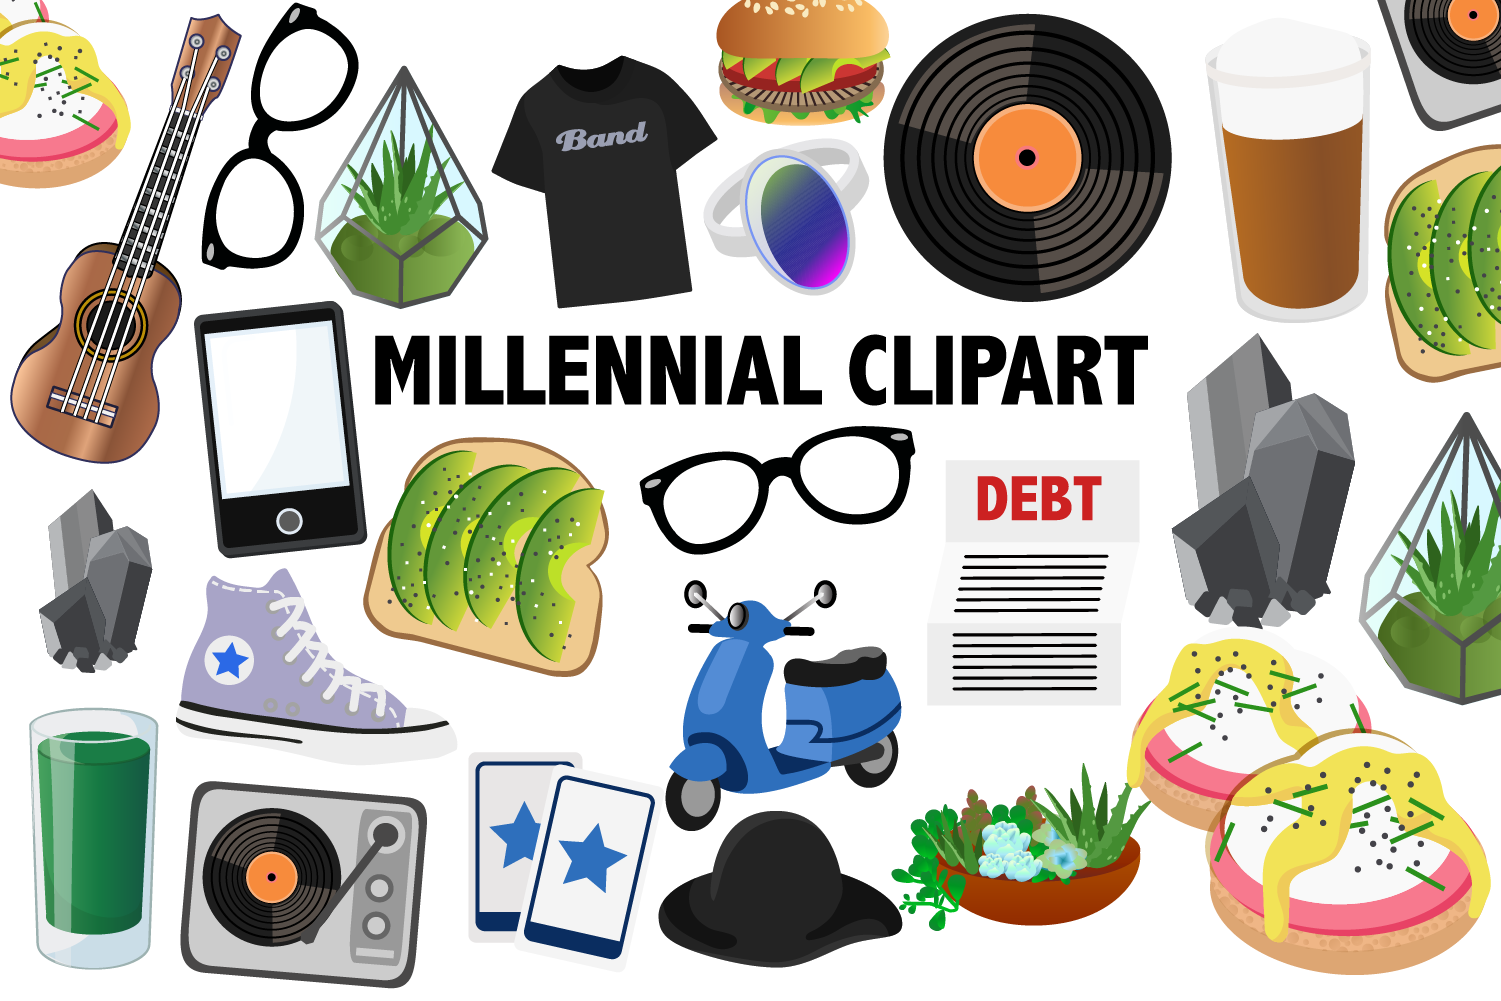 Millennial Clipart (Graphic) by Mine Eyes Design Clip